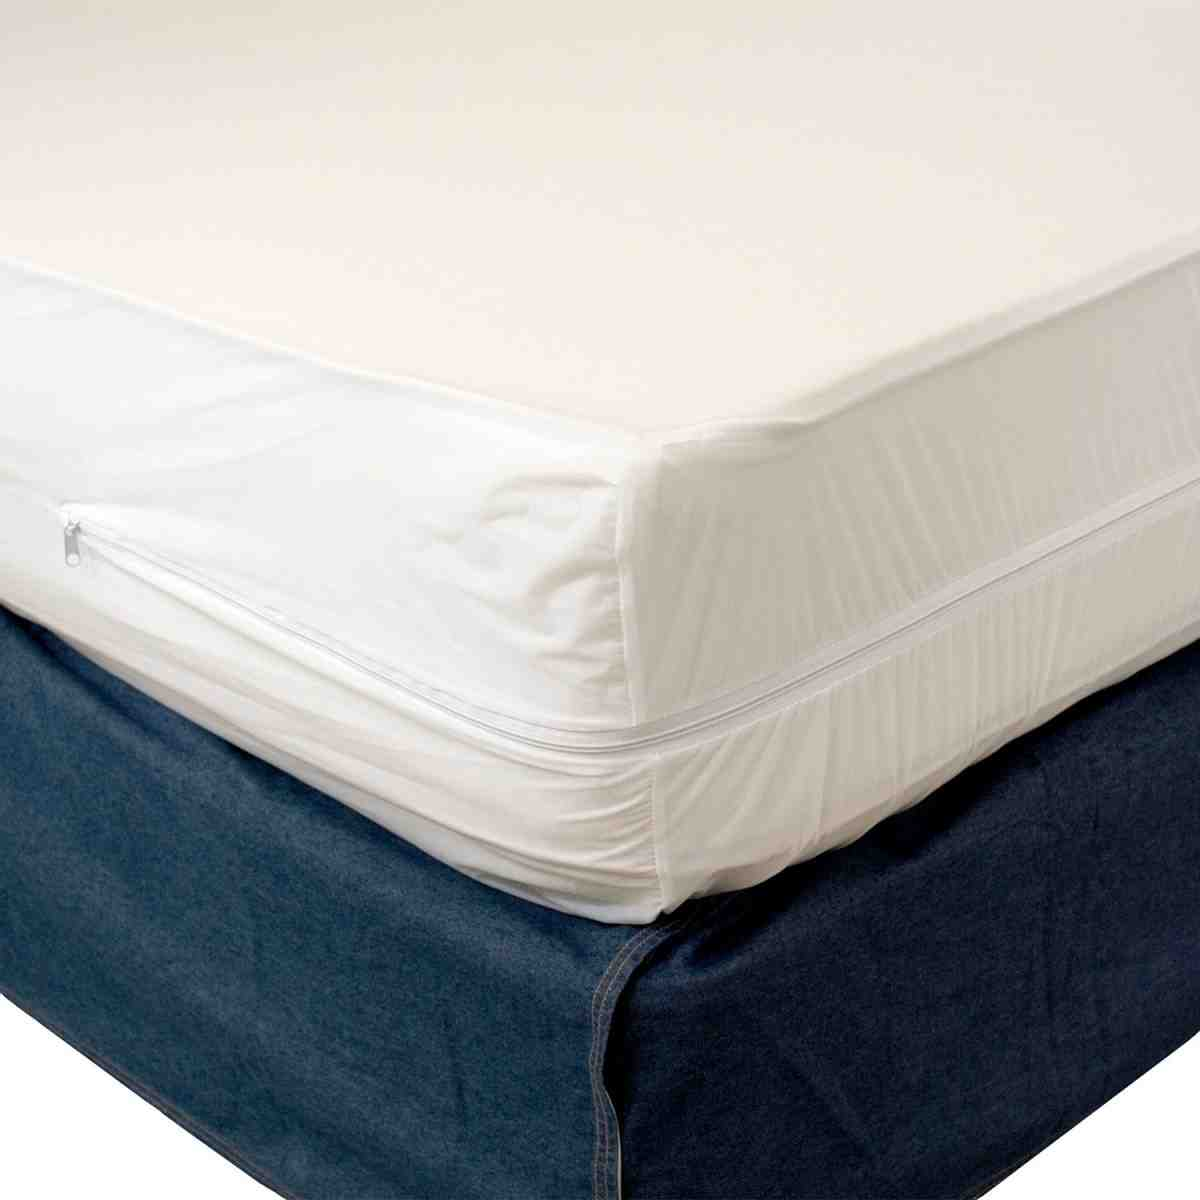 waterproof mattress pad for sofa bed double with storage uk cover full home furniture design